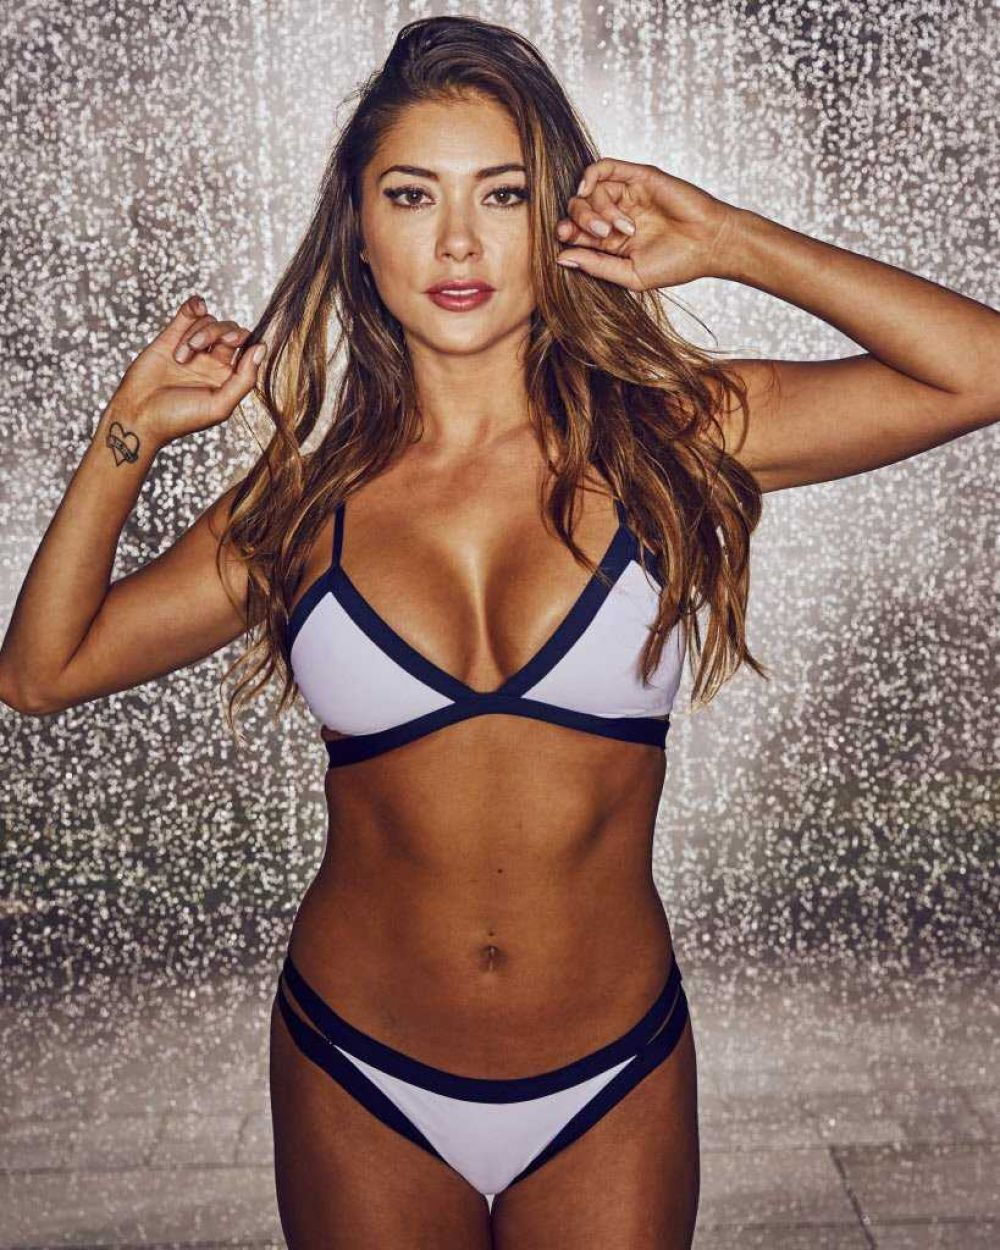 Arianny Celeste In Bikini Photoshoot for NY Post, May 2017